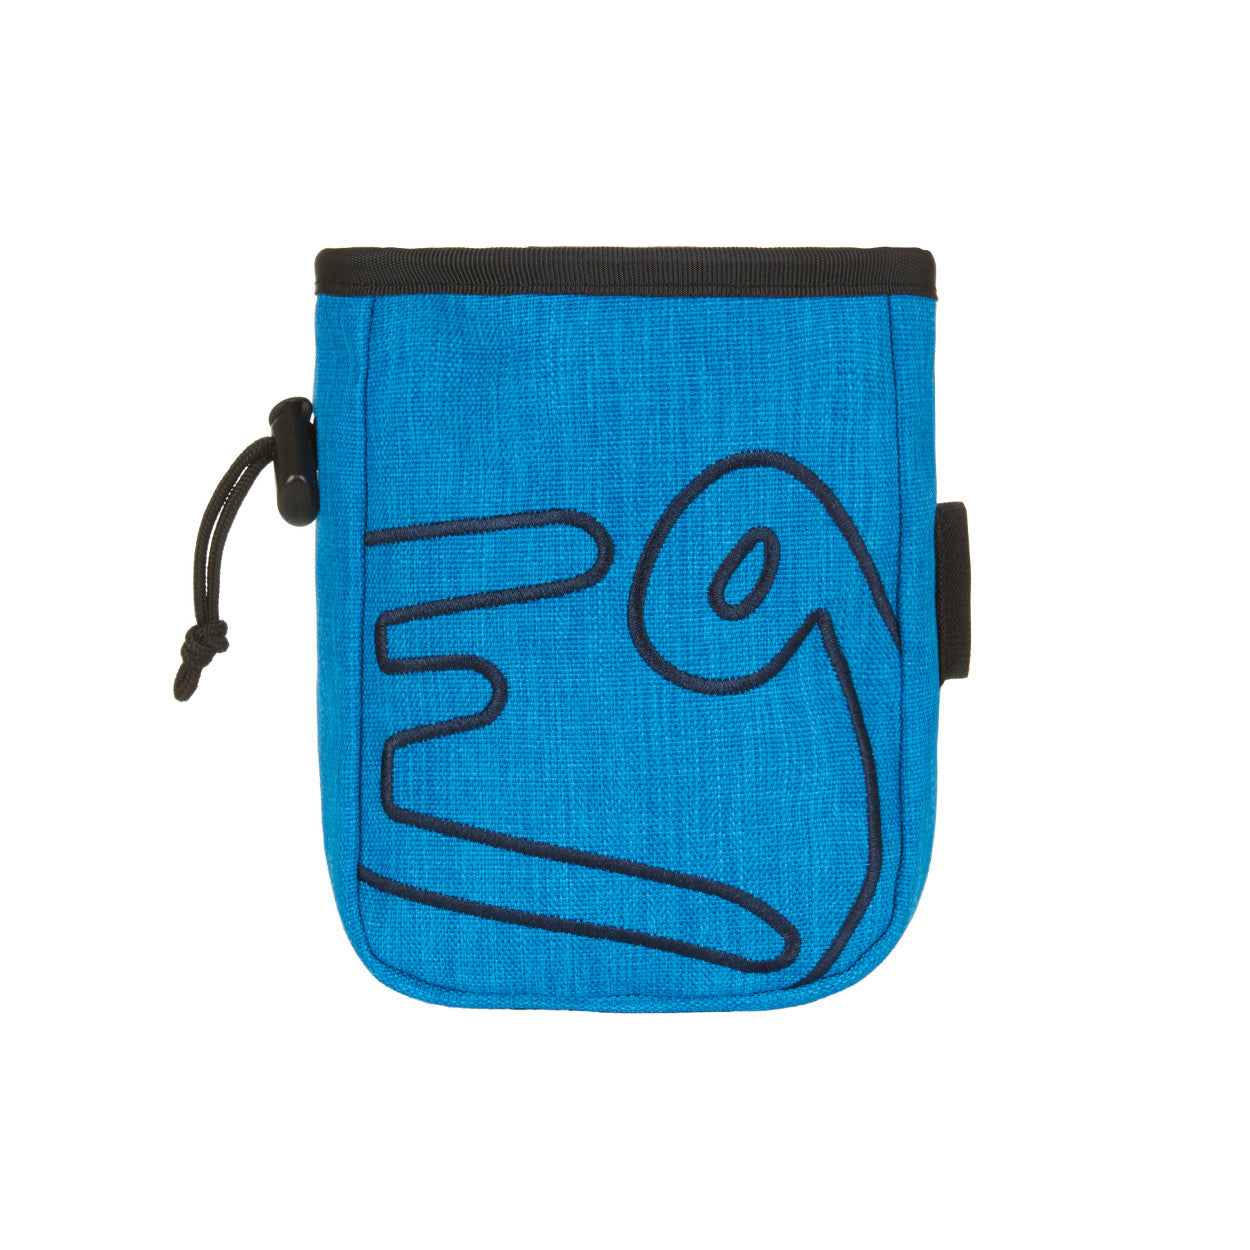 E9 Osso Chalk Bag in cobalt